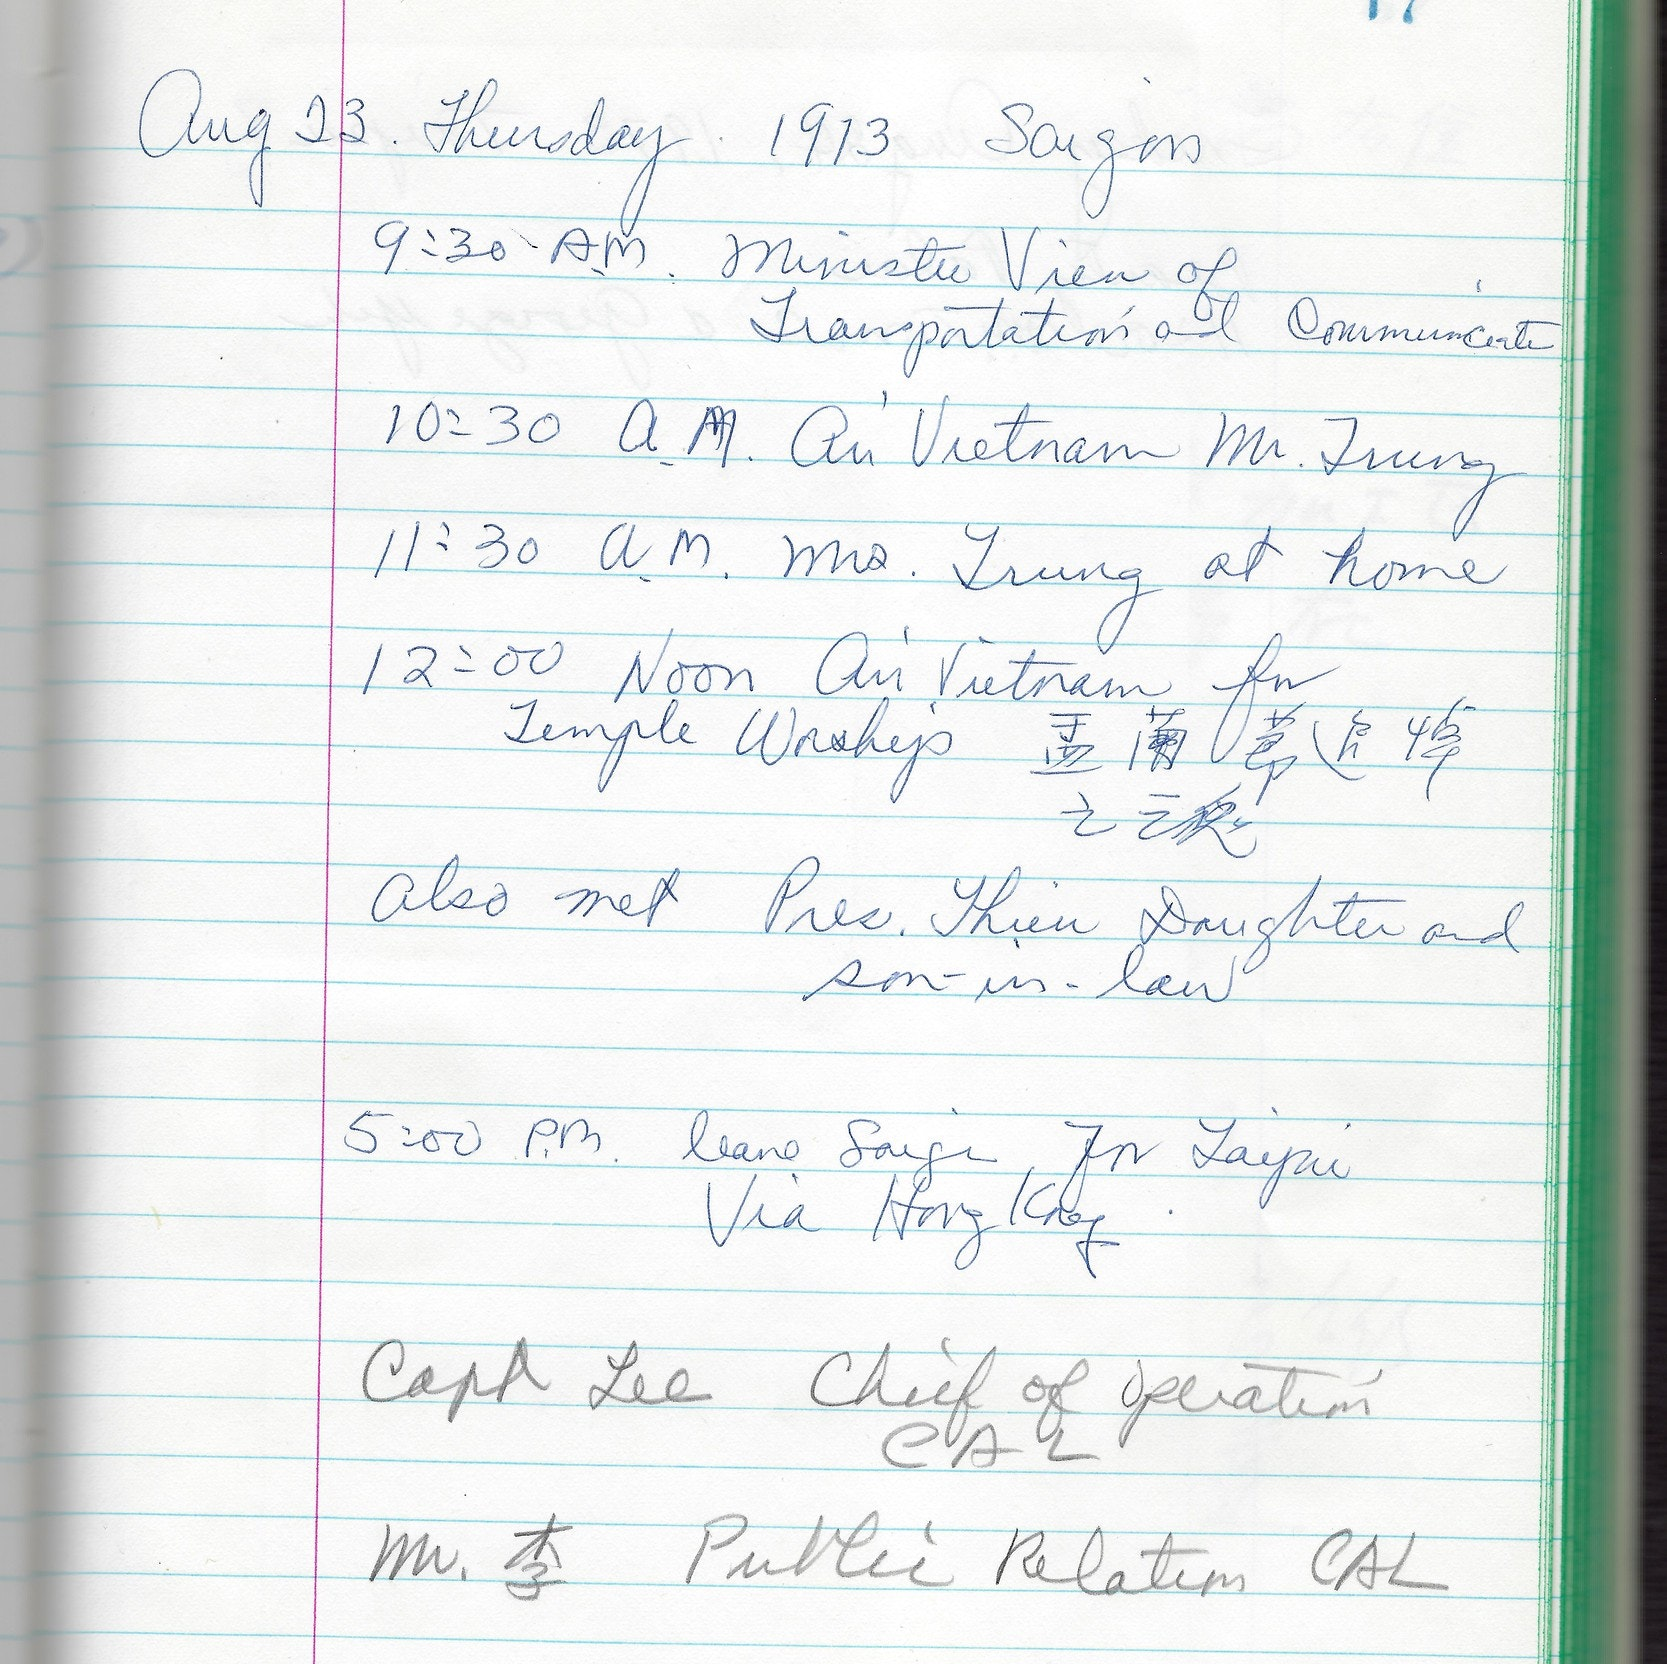 Page from Anna Chennault's diary. Page outlines her activities during her travels on 08/13/1913